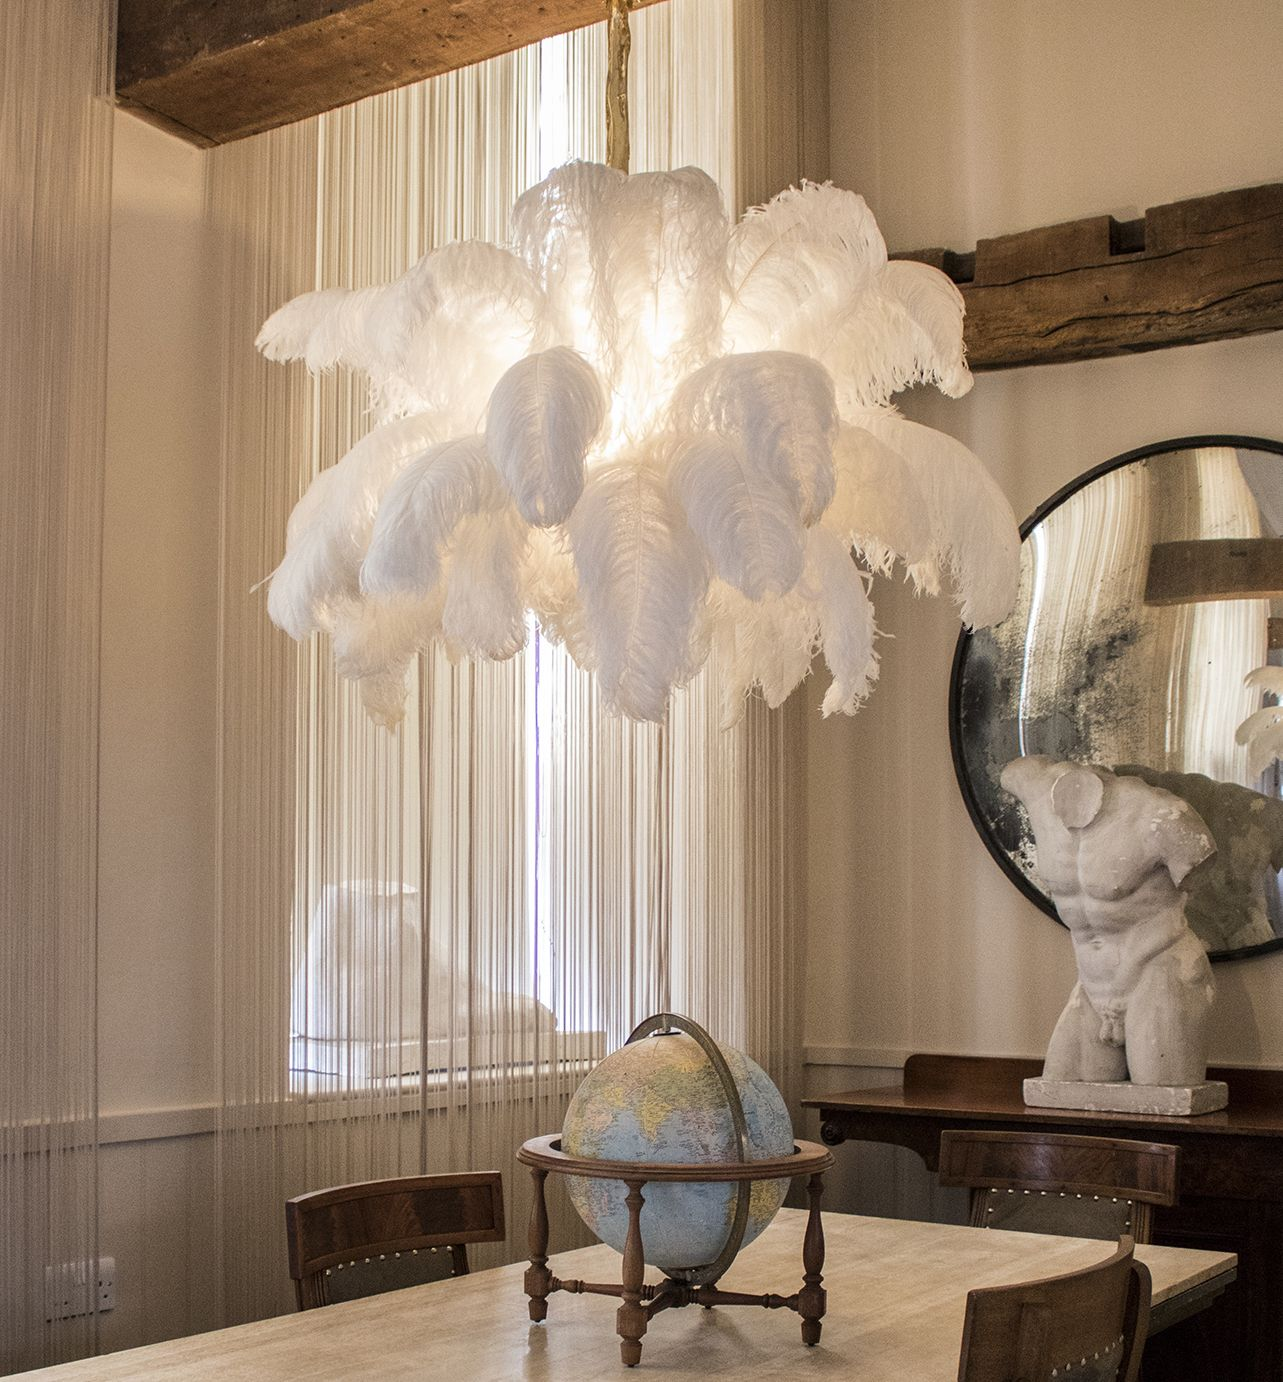 The Feather Chandelier For More Information On Our Chandeliers Please Contact Info Amoderngrandtour Com Aynhoe Park